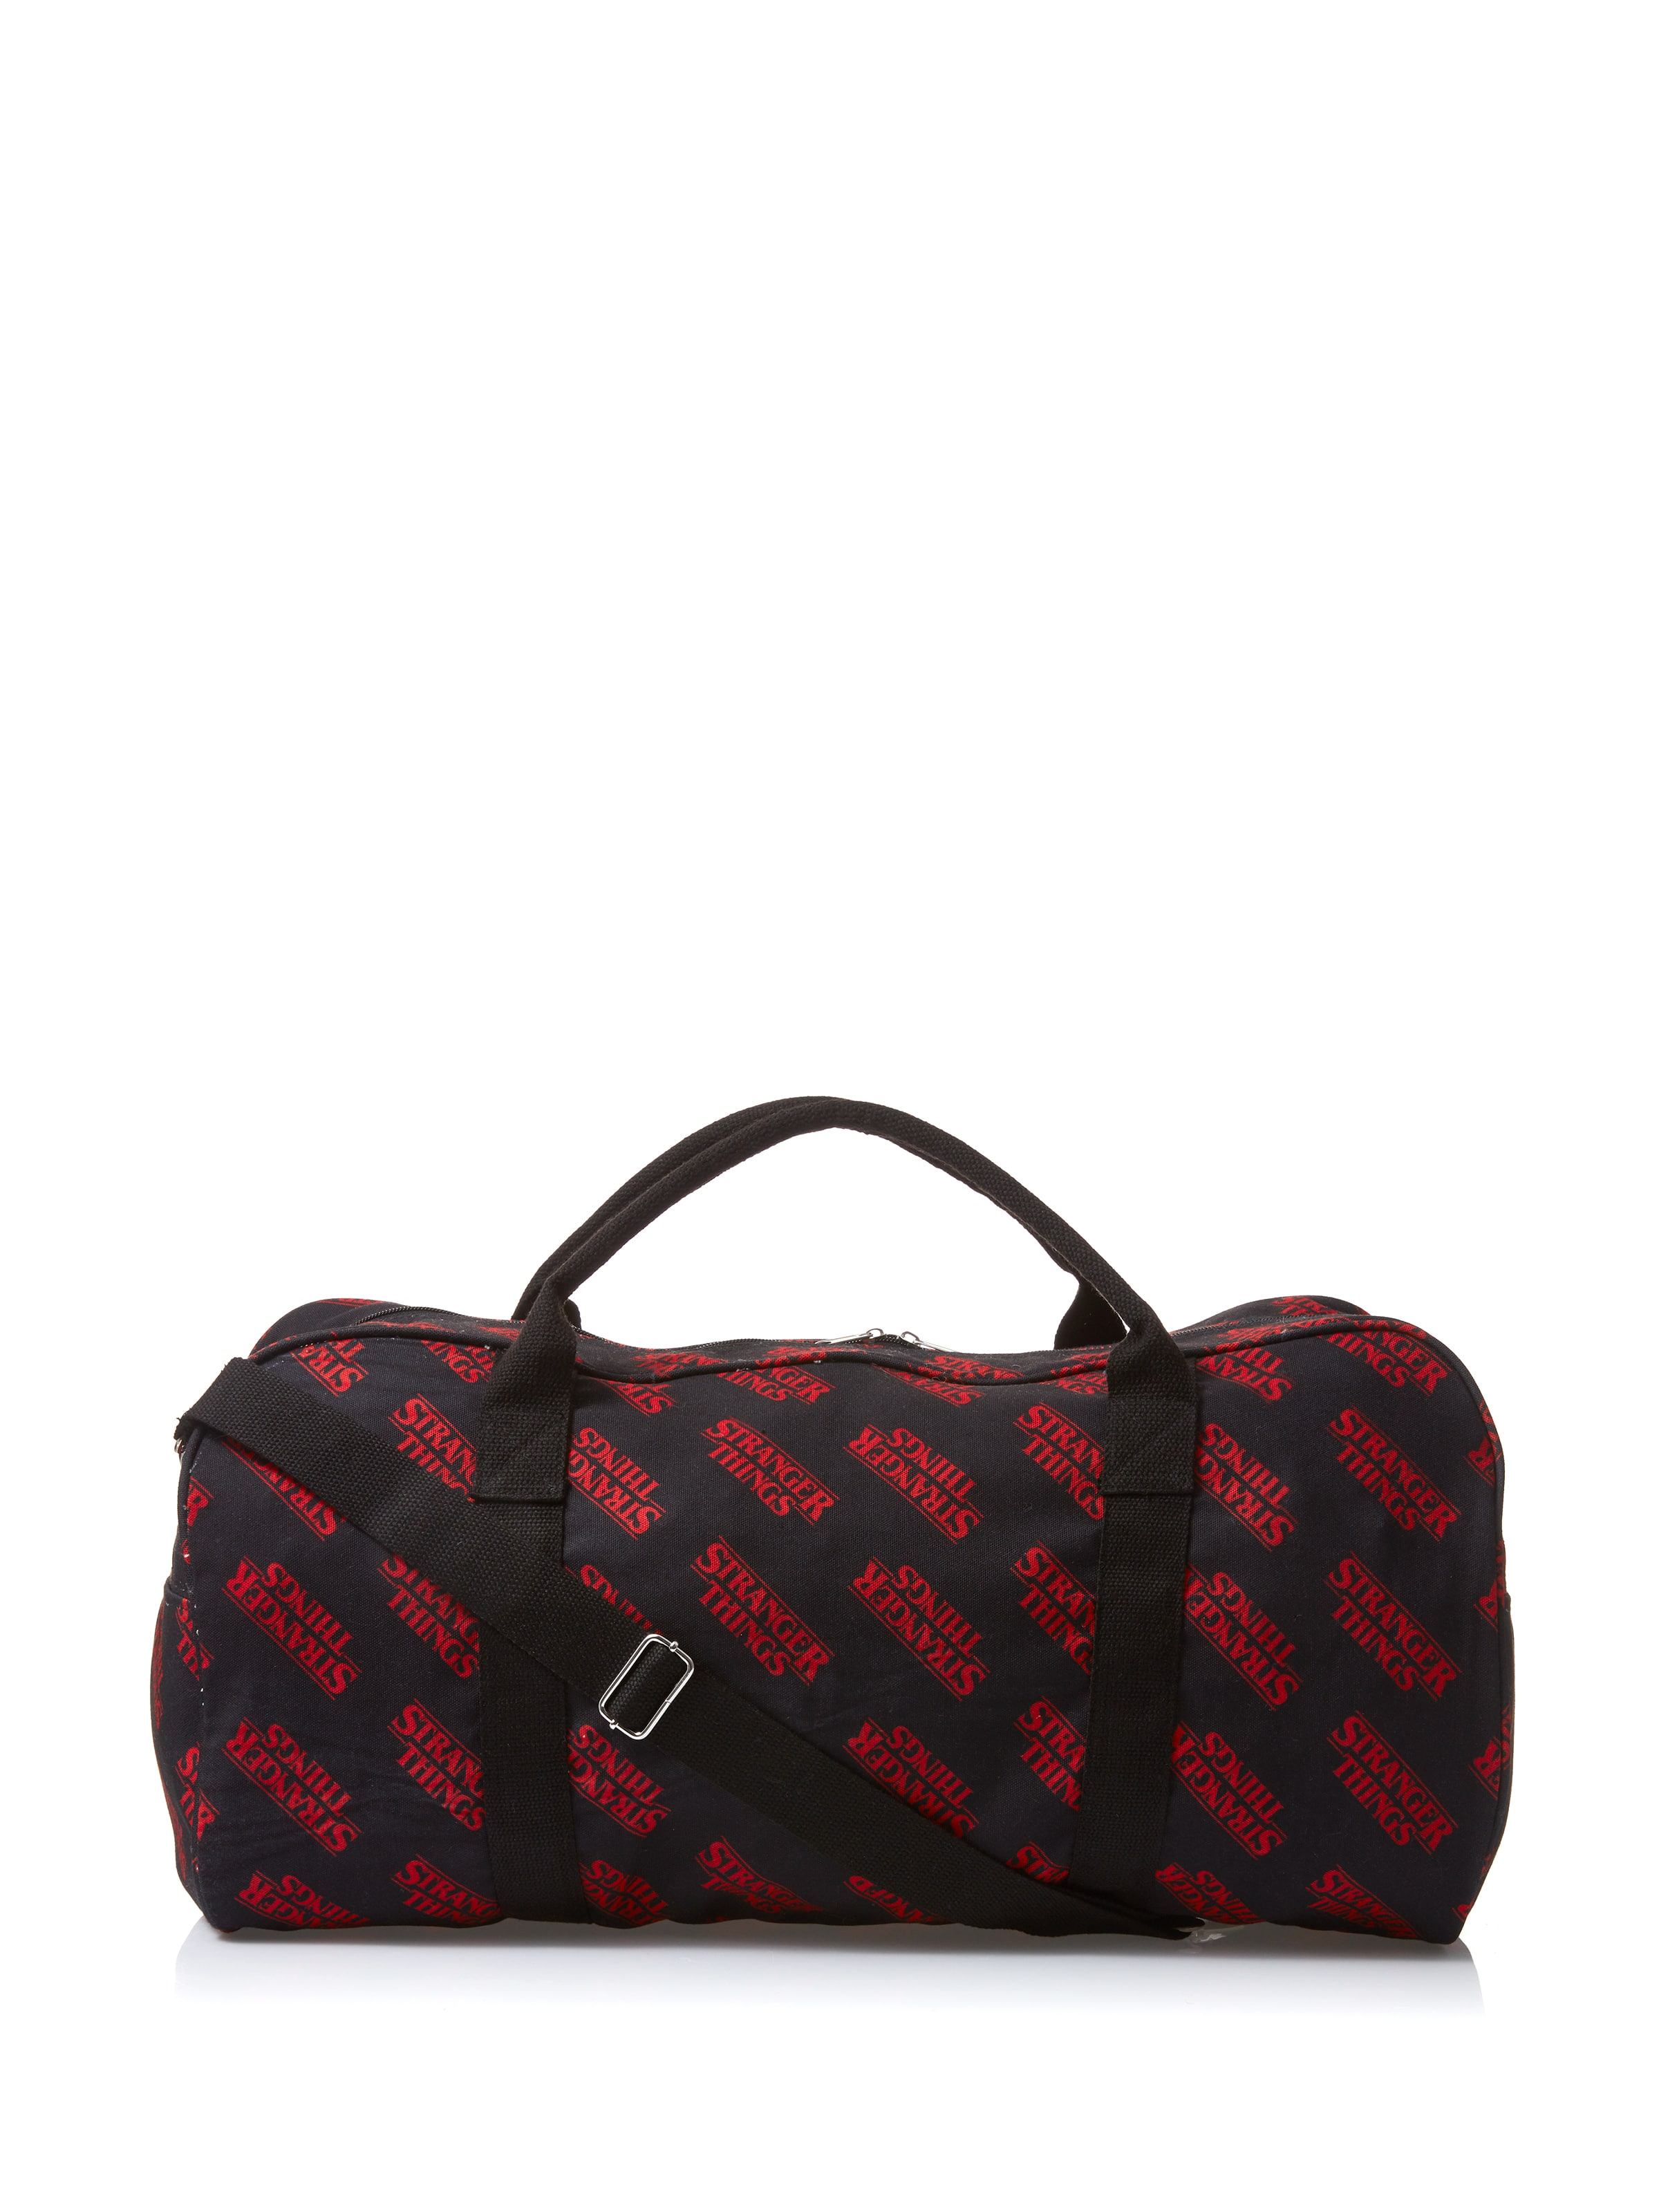 Stranger Things Duffle Bag